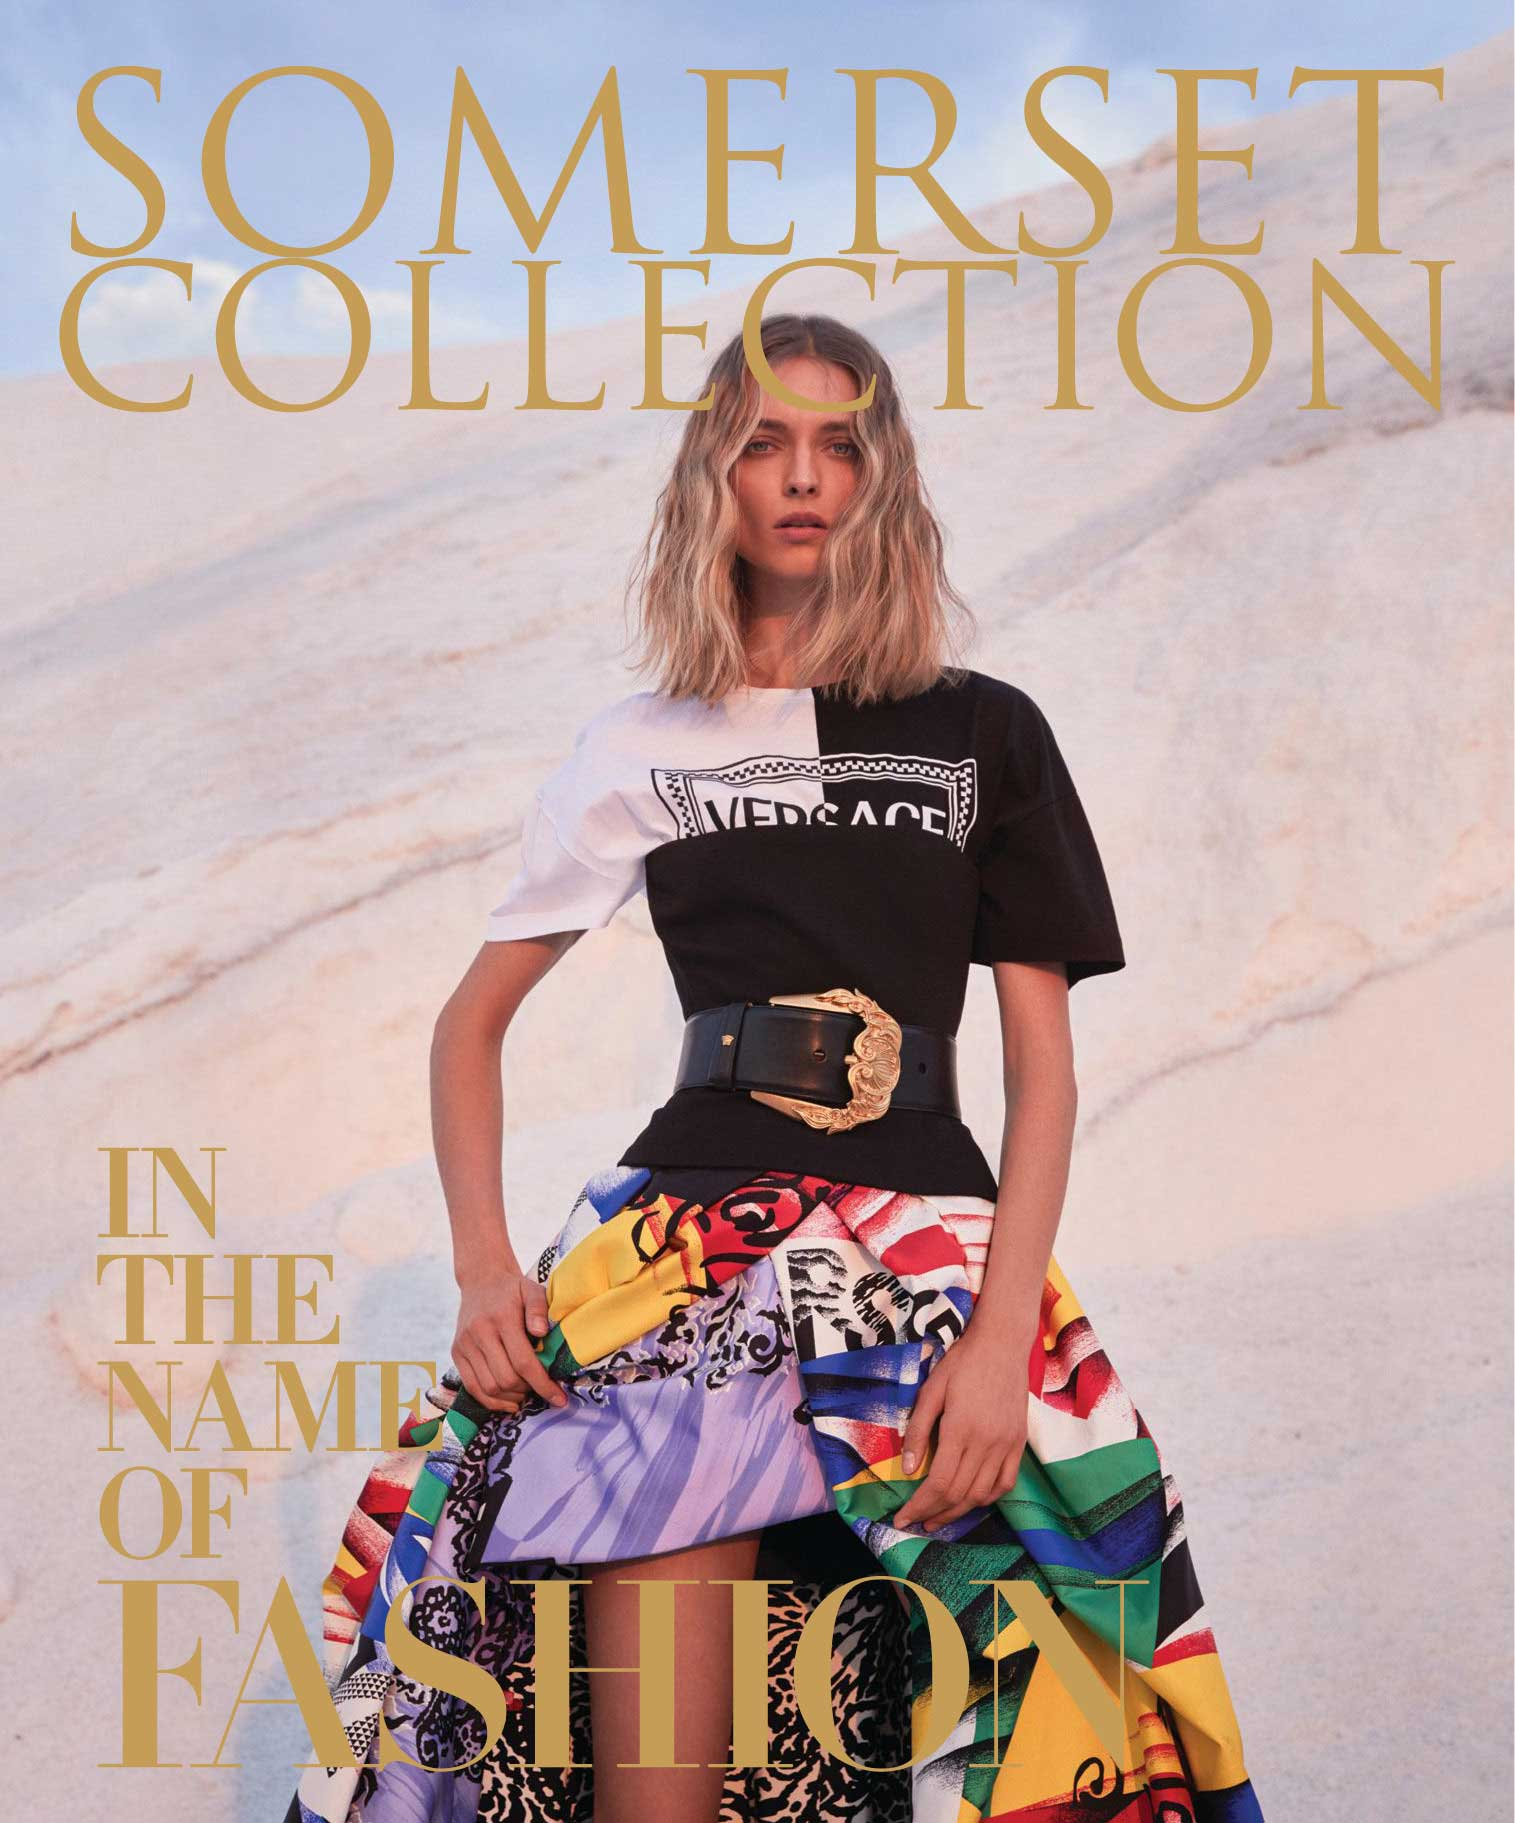 Somerset Collection and Millenia Magazines